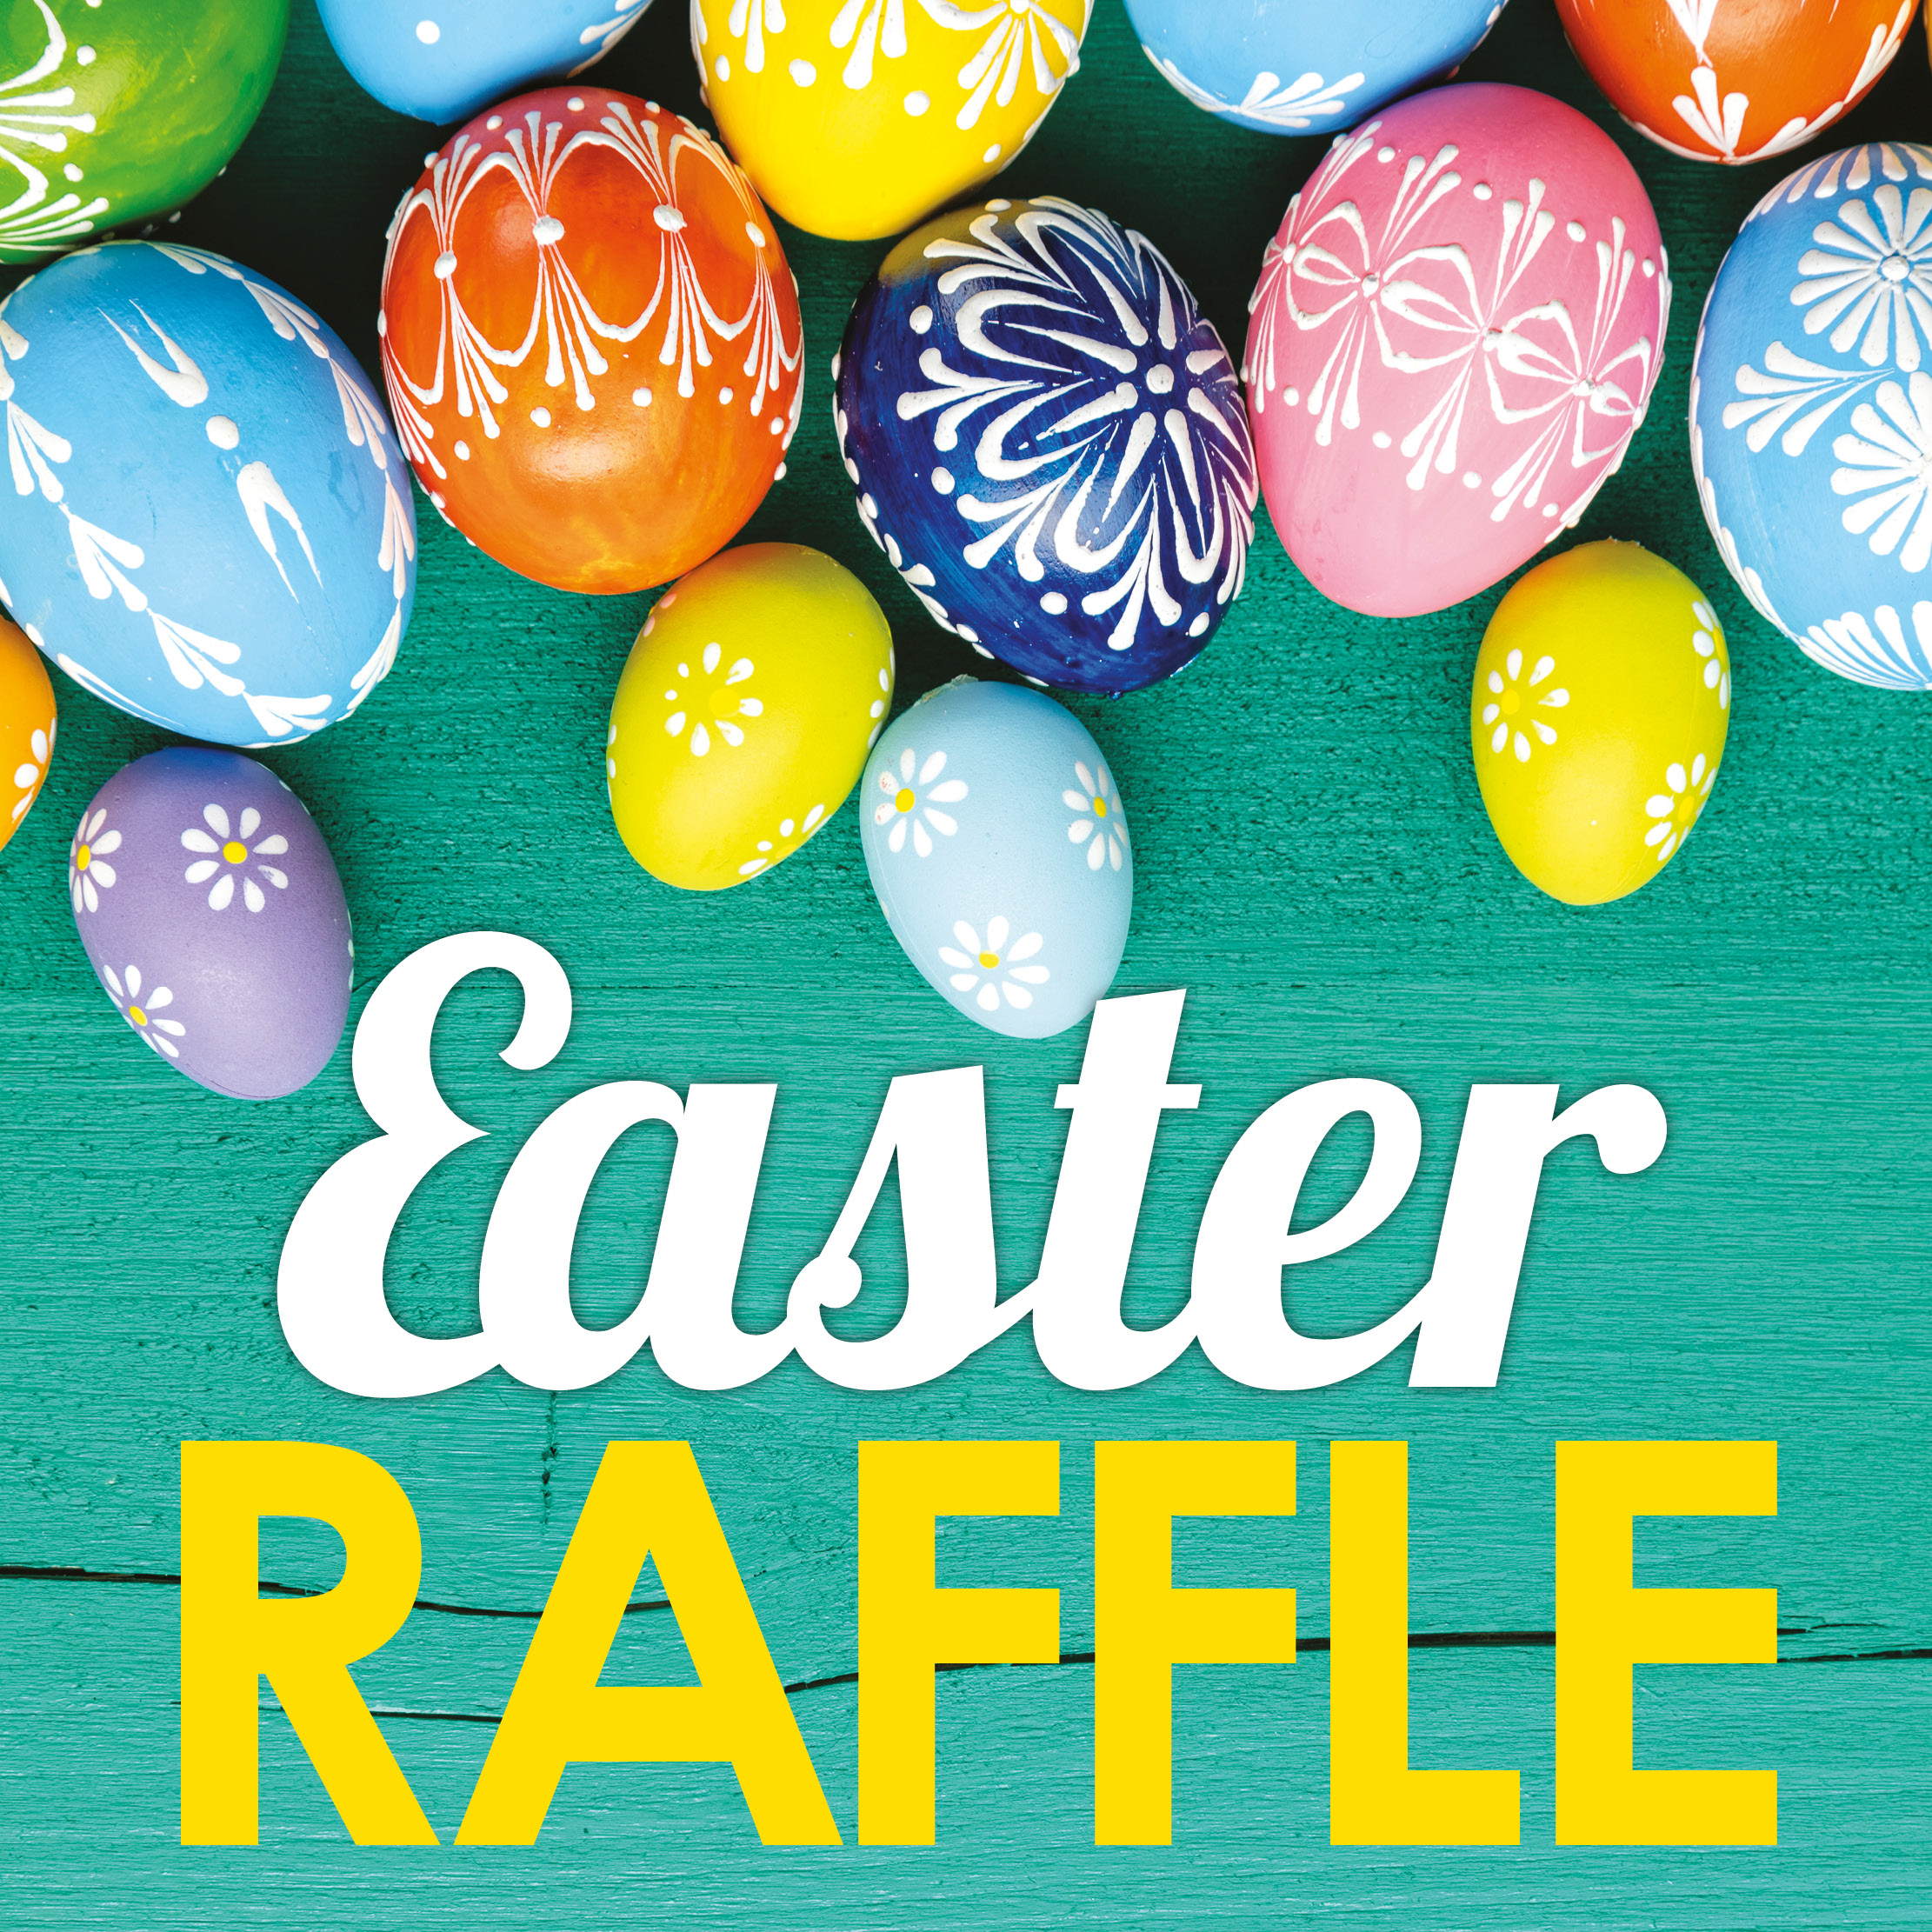 Image result for easter raffle